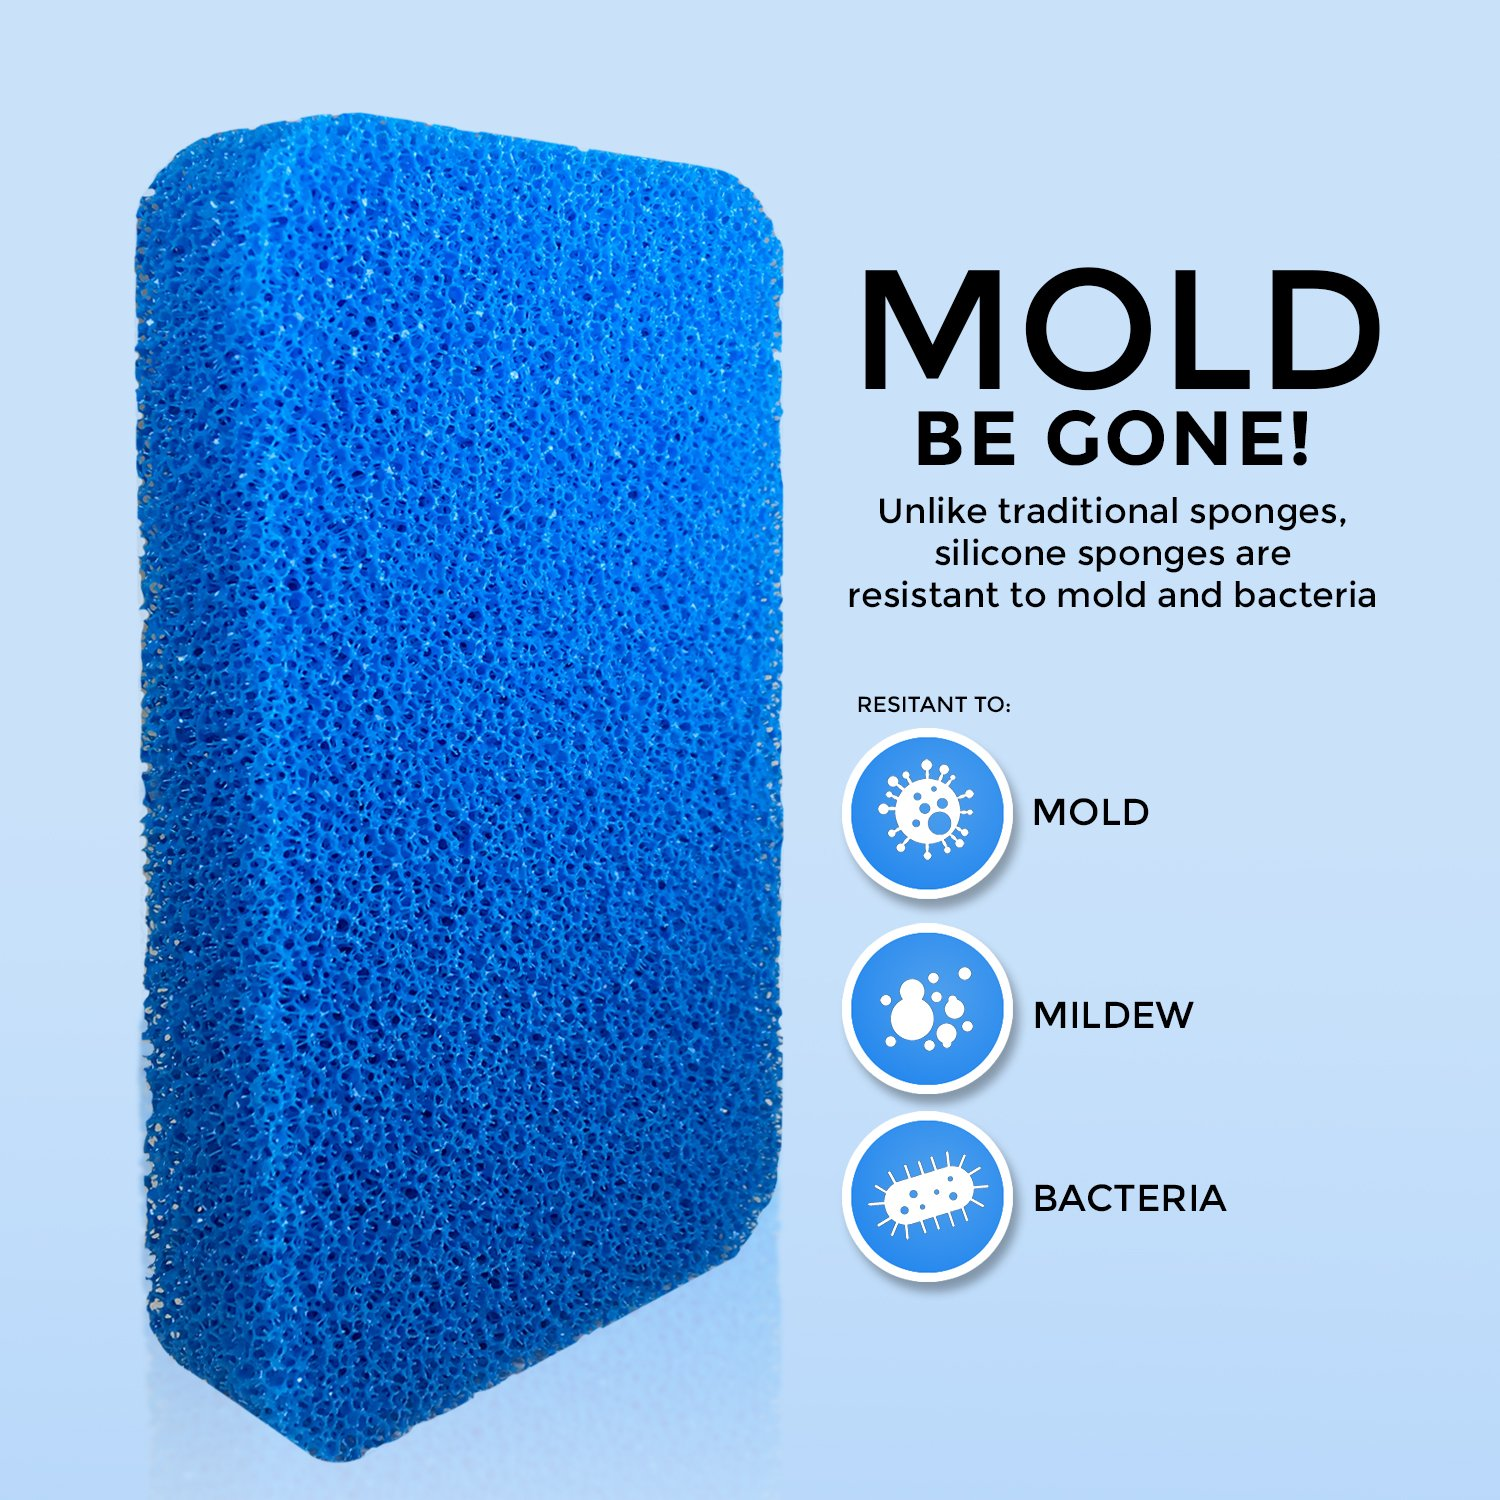 - Modern Antimicrobial Kitchen Sponges Silicone Sponge 100/% Mold Mildew and Bacteria Resistant Zero Smell Technology STK Heavy Duty Silicone Scrubber Sponges 10x More Durable 10 Pack